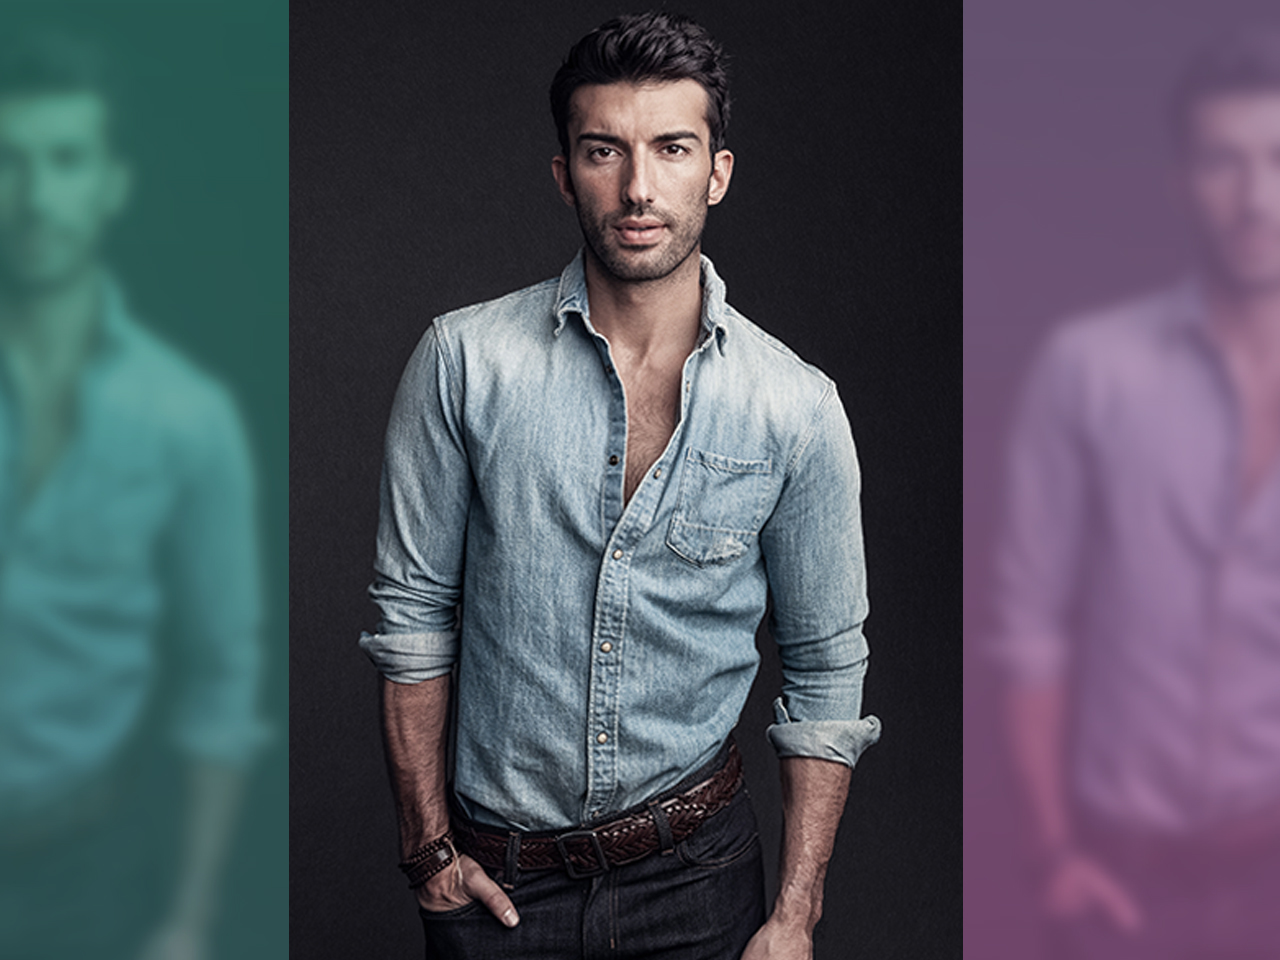 Jane The Virgin's Justin Baldoni: Men Need To Redefine The 'Guy Code'